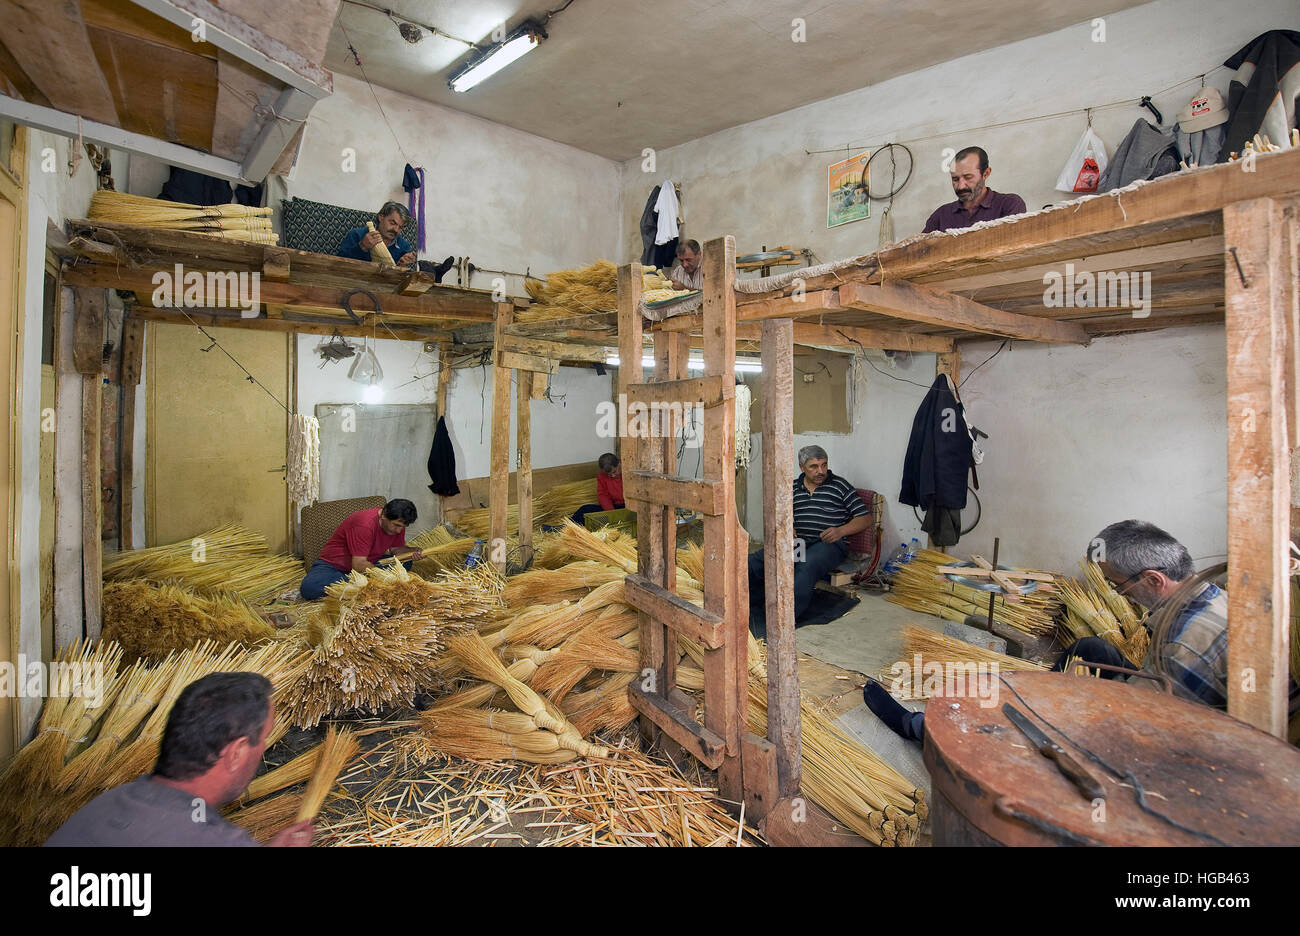 One of the crafts that made Edirne famous was making brooms. Today, there are still a couple of craftsmen making - Stock Image